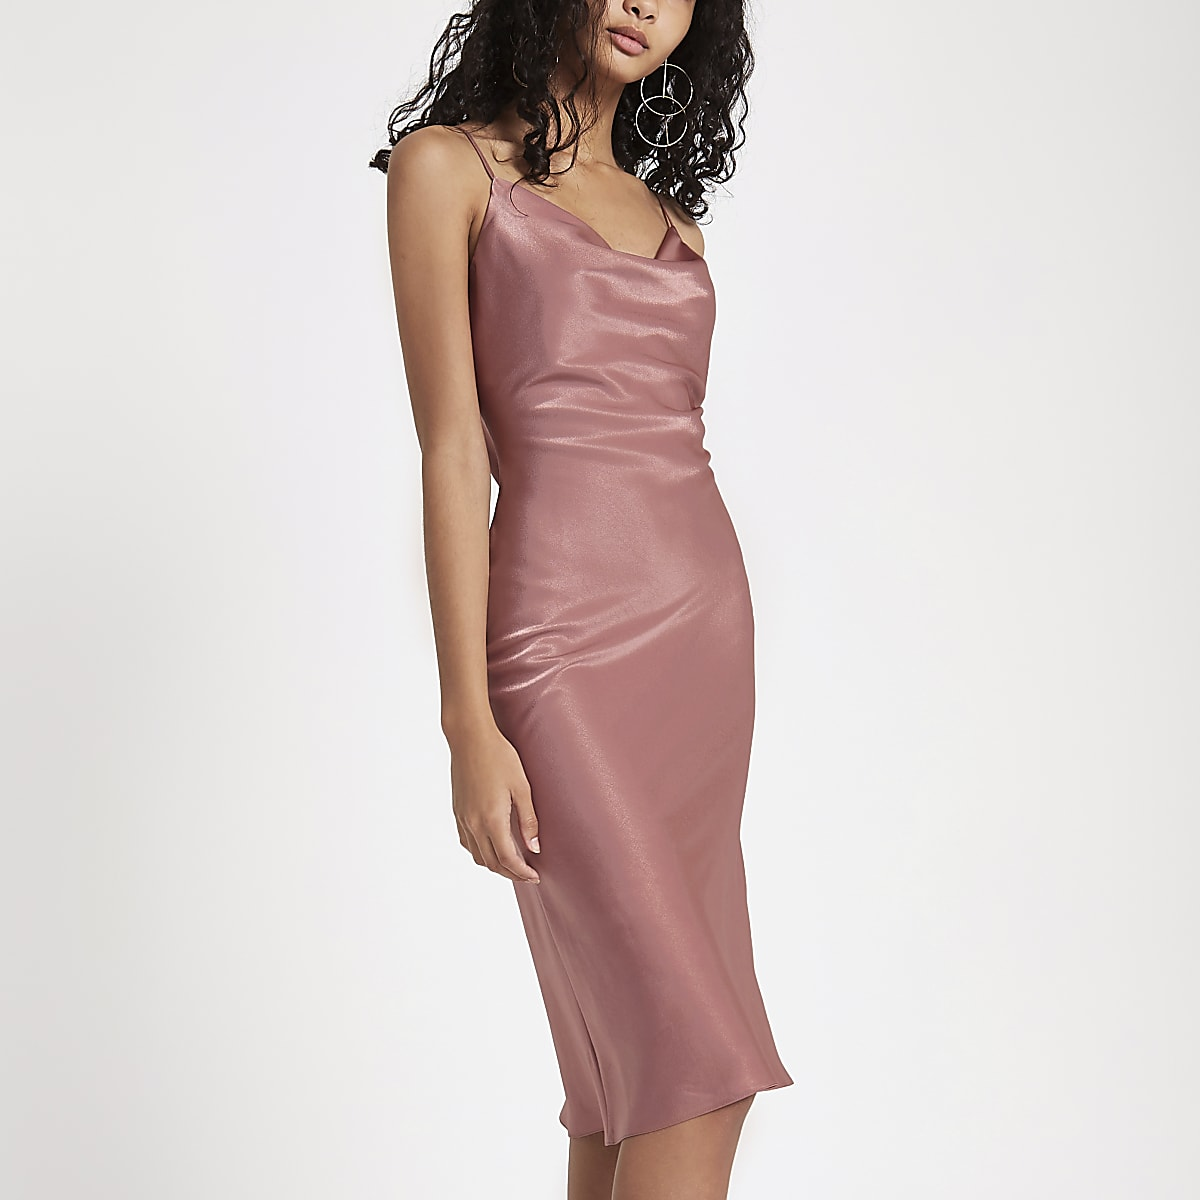 8a5b4e9bbf382 Pink cowl neck slip dress - Slip & Cami Dresses - Dresses - women